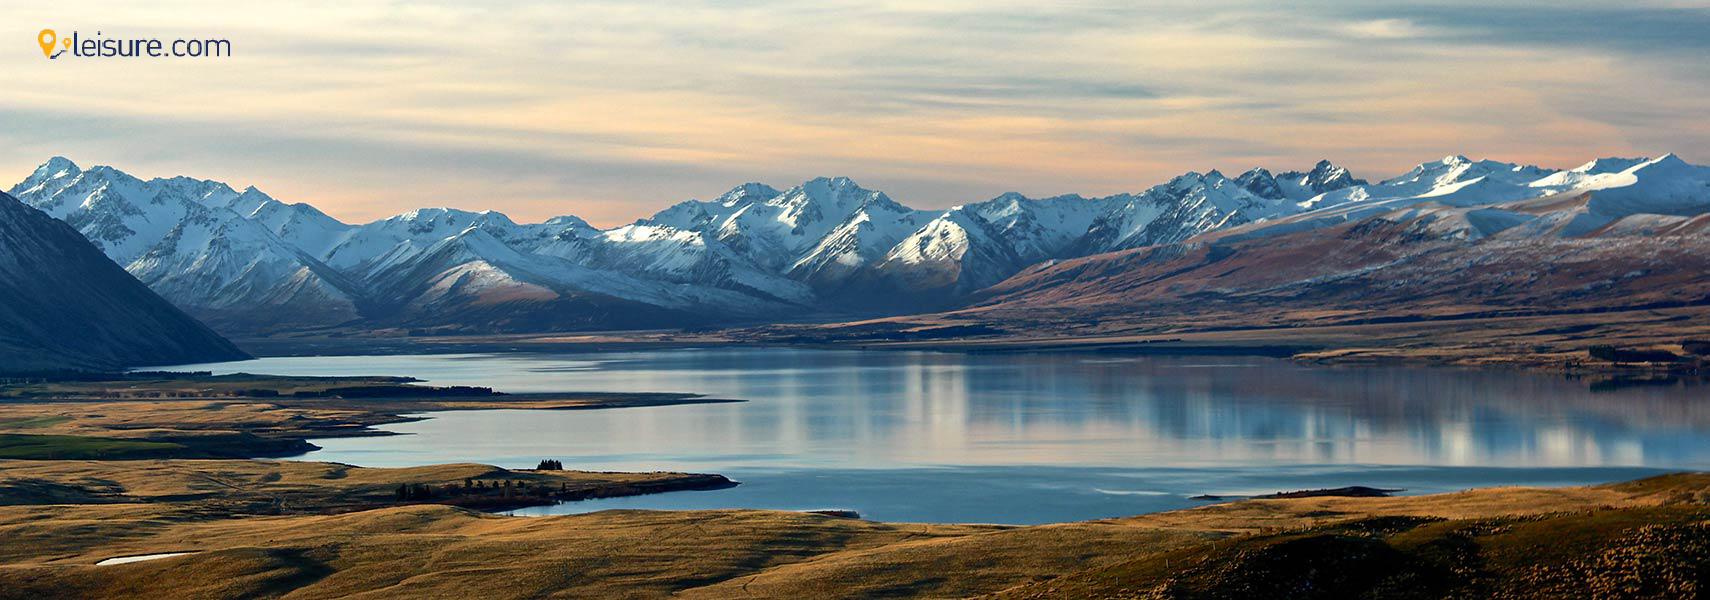 When and Why Should Visit in New Zealand? -15 Days New Zealand Trip